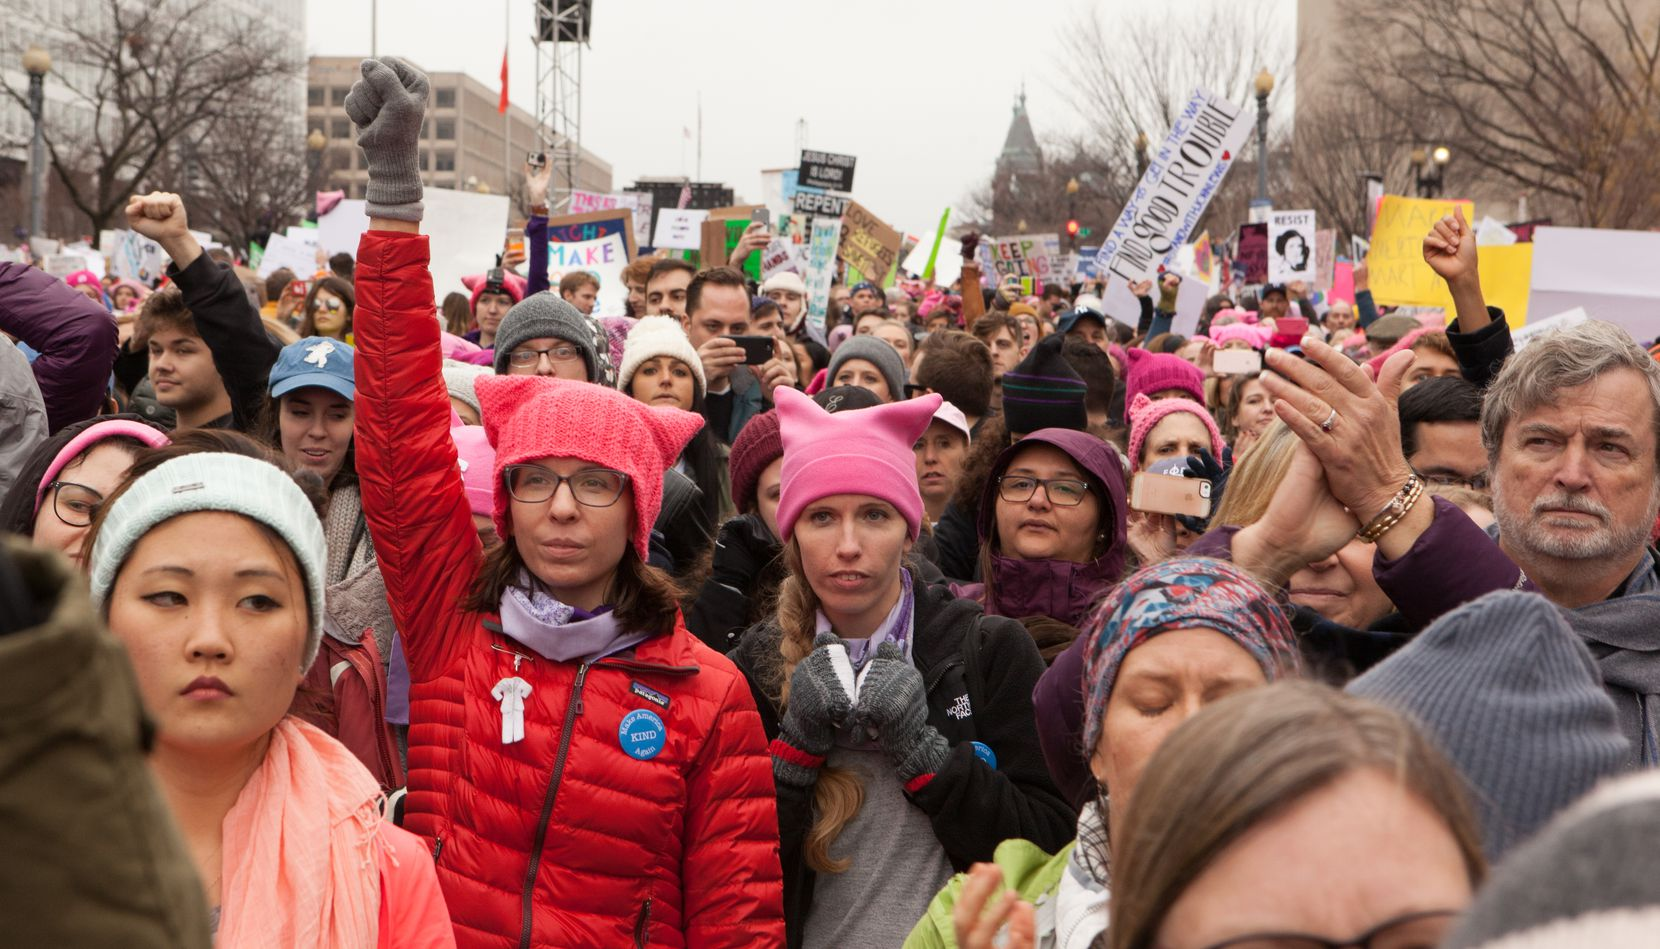 Women marched in Washington D.C. on Saturday, Jan. 21, following the inauguration of President Donald Trump.